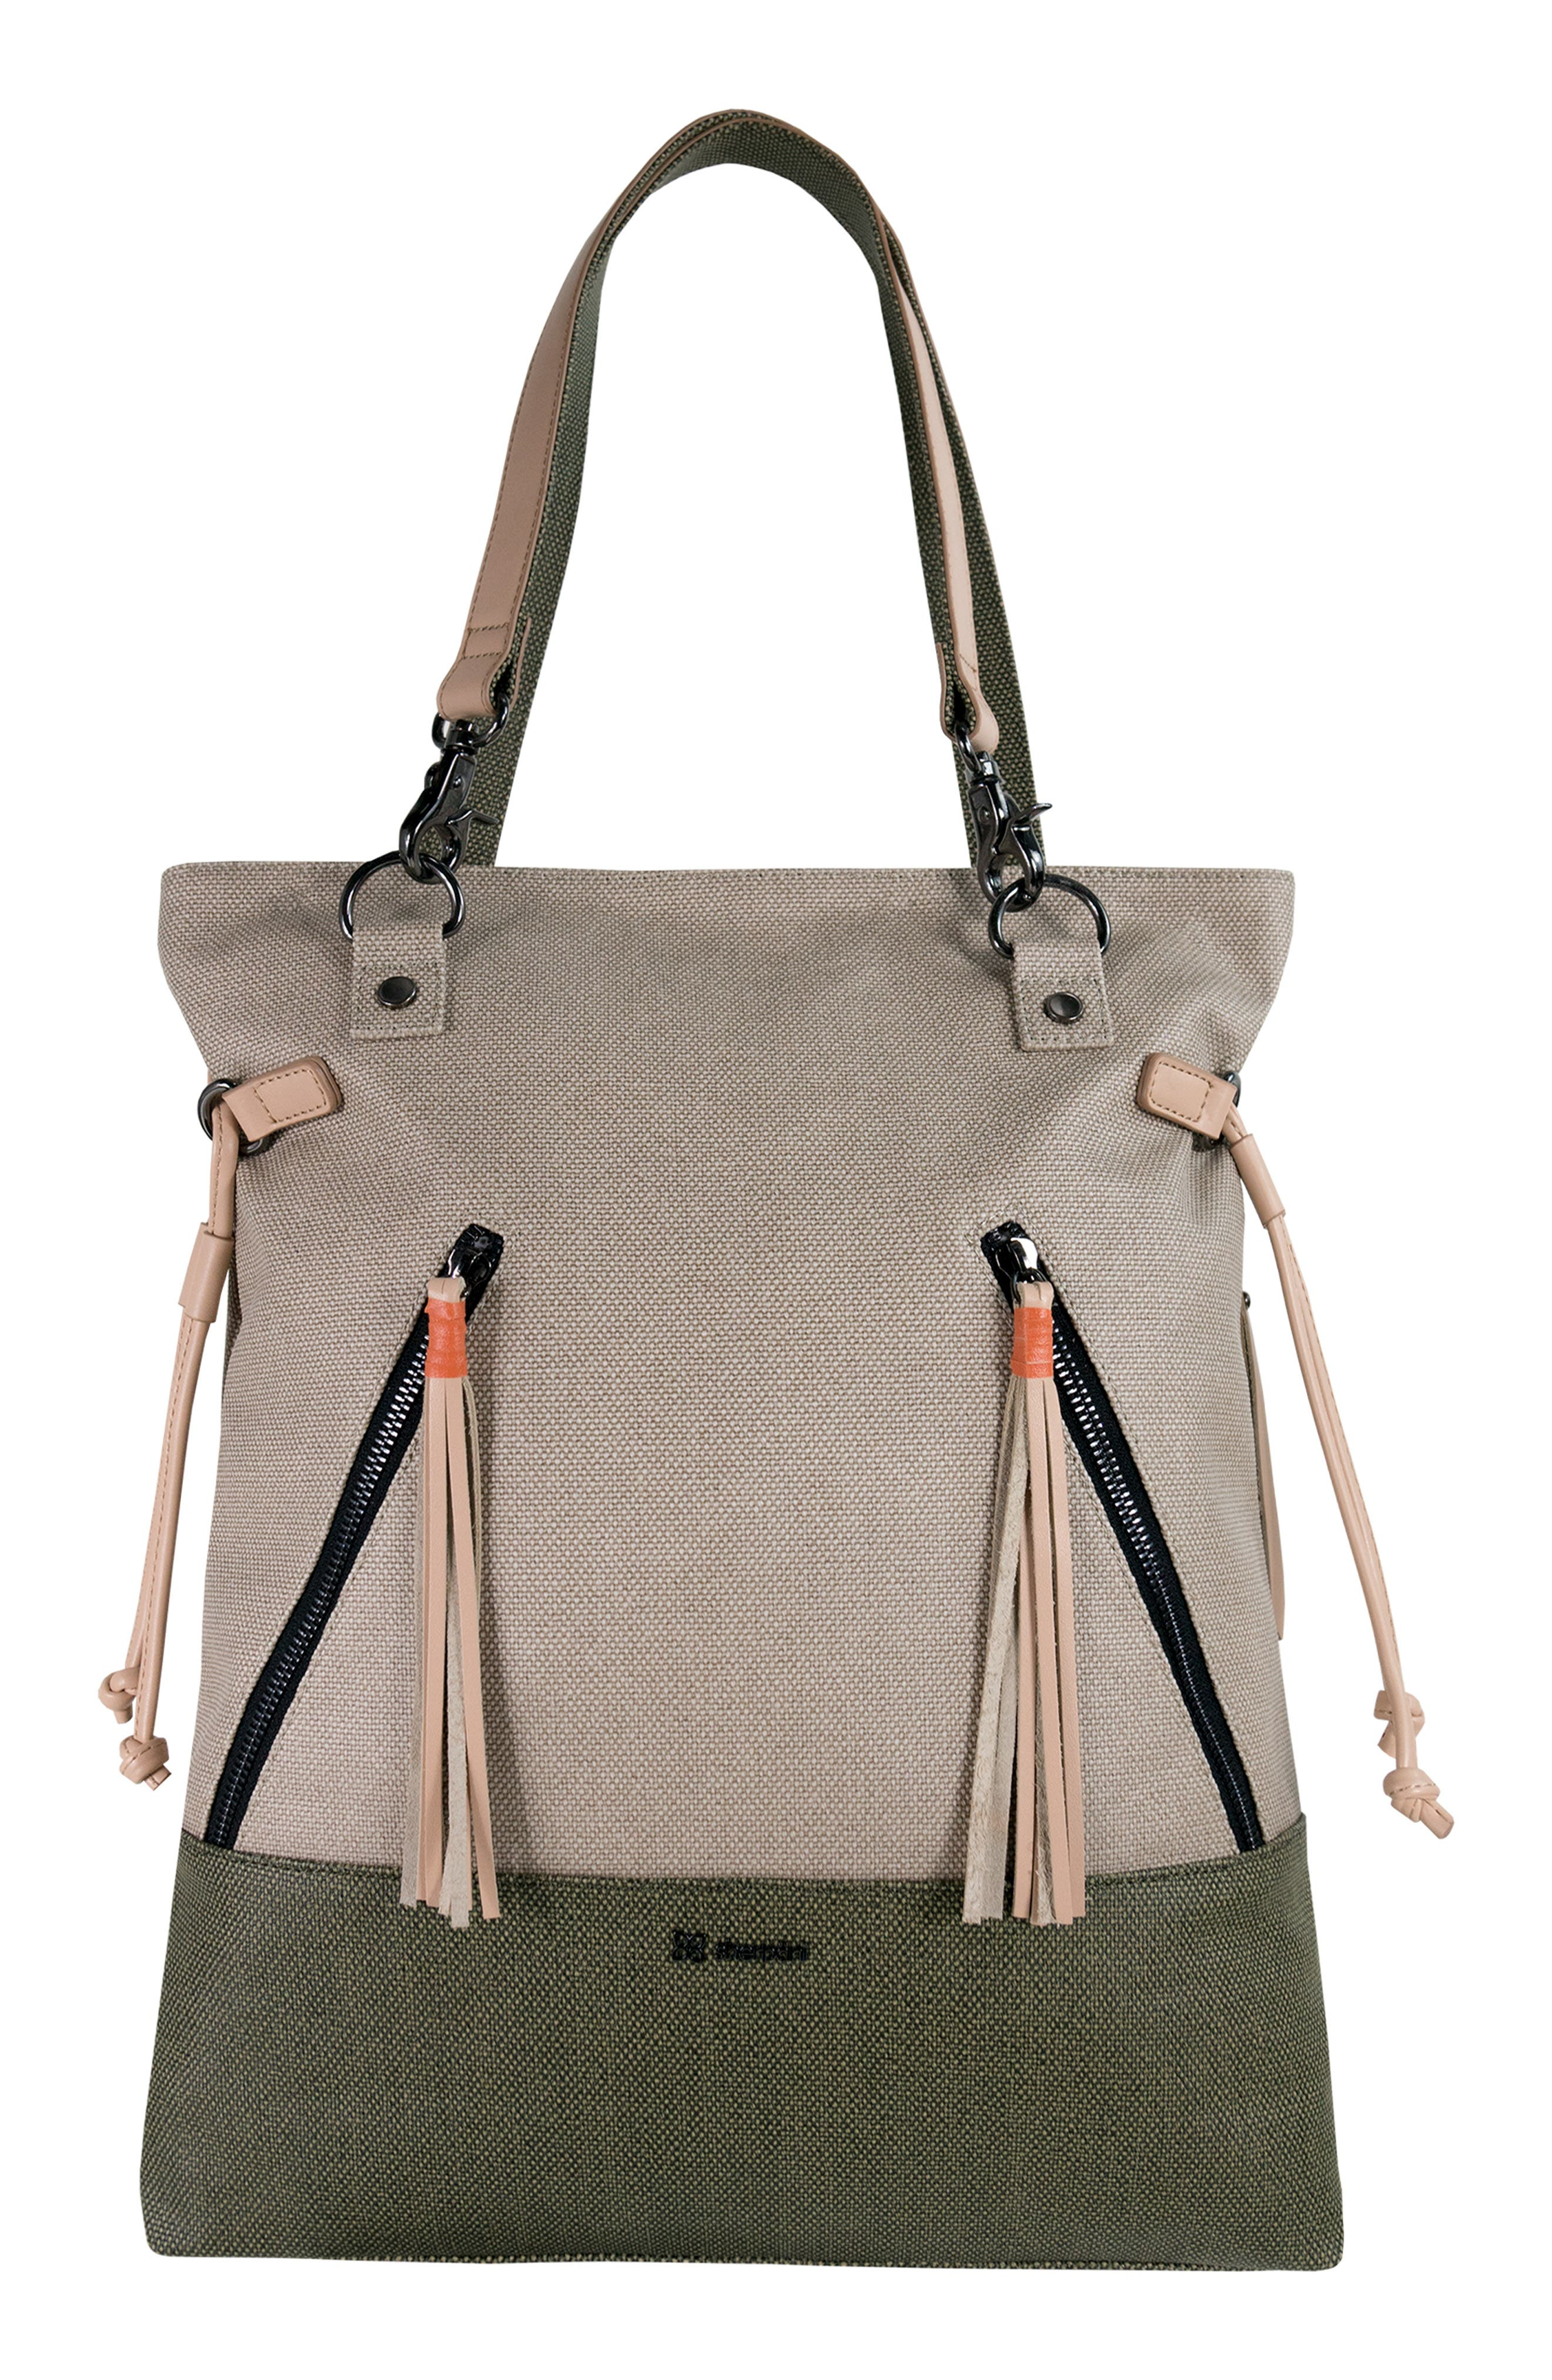 Tempest Canvas Convertible Backpack,                             Main thumbnail 1, color,                             901